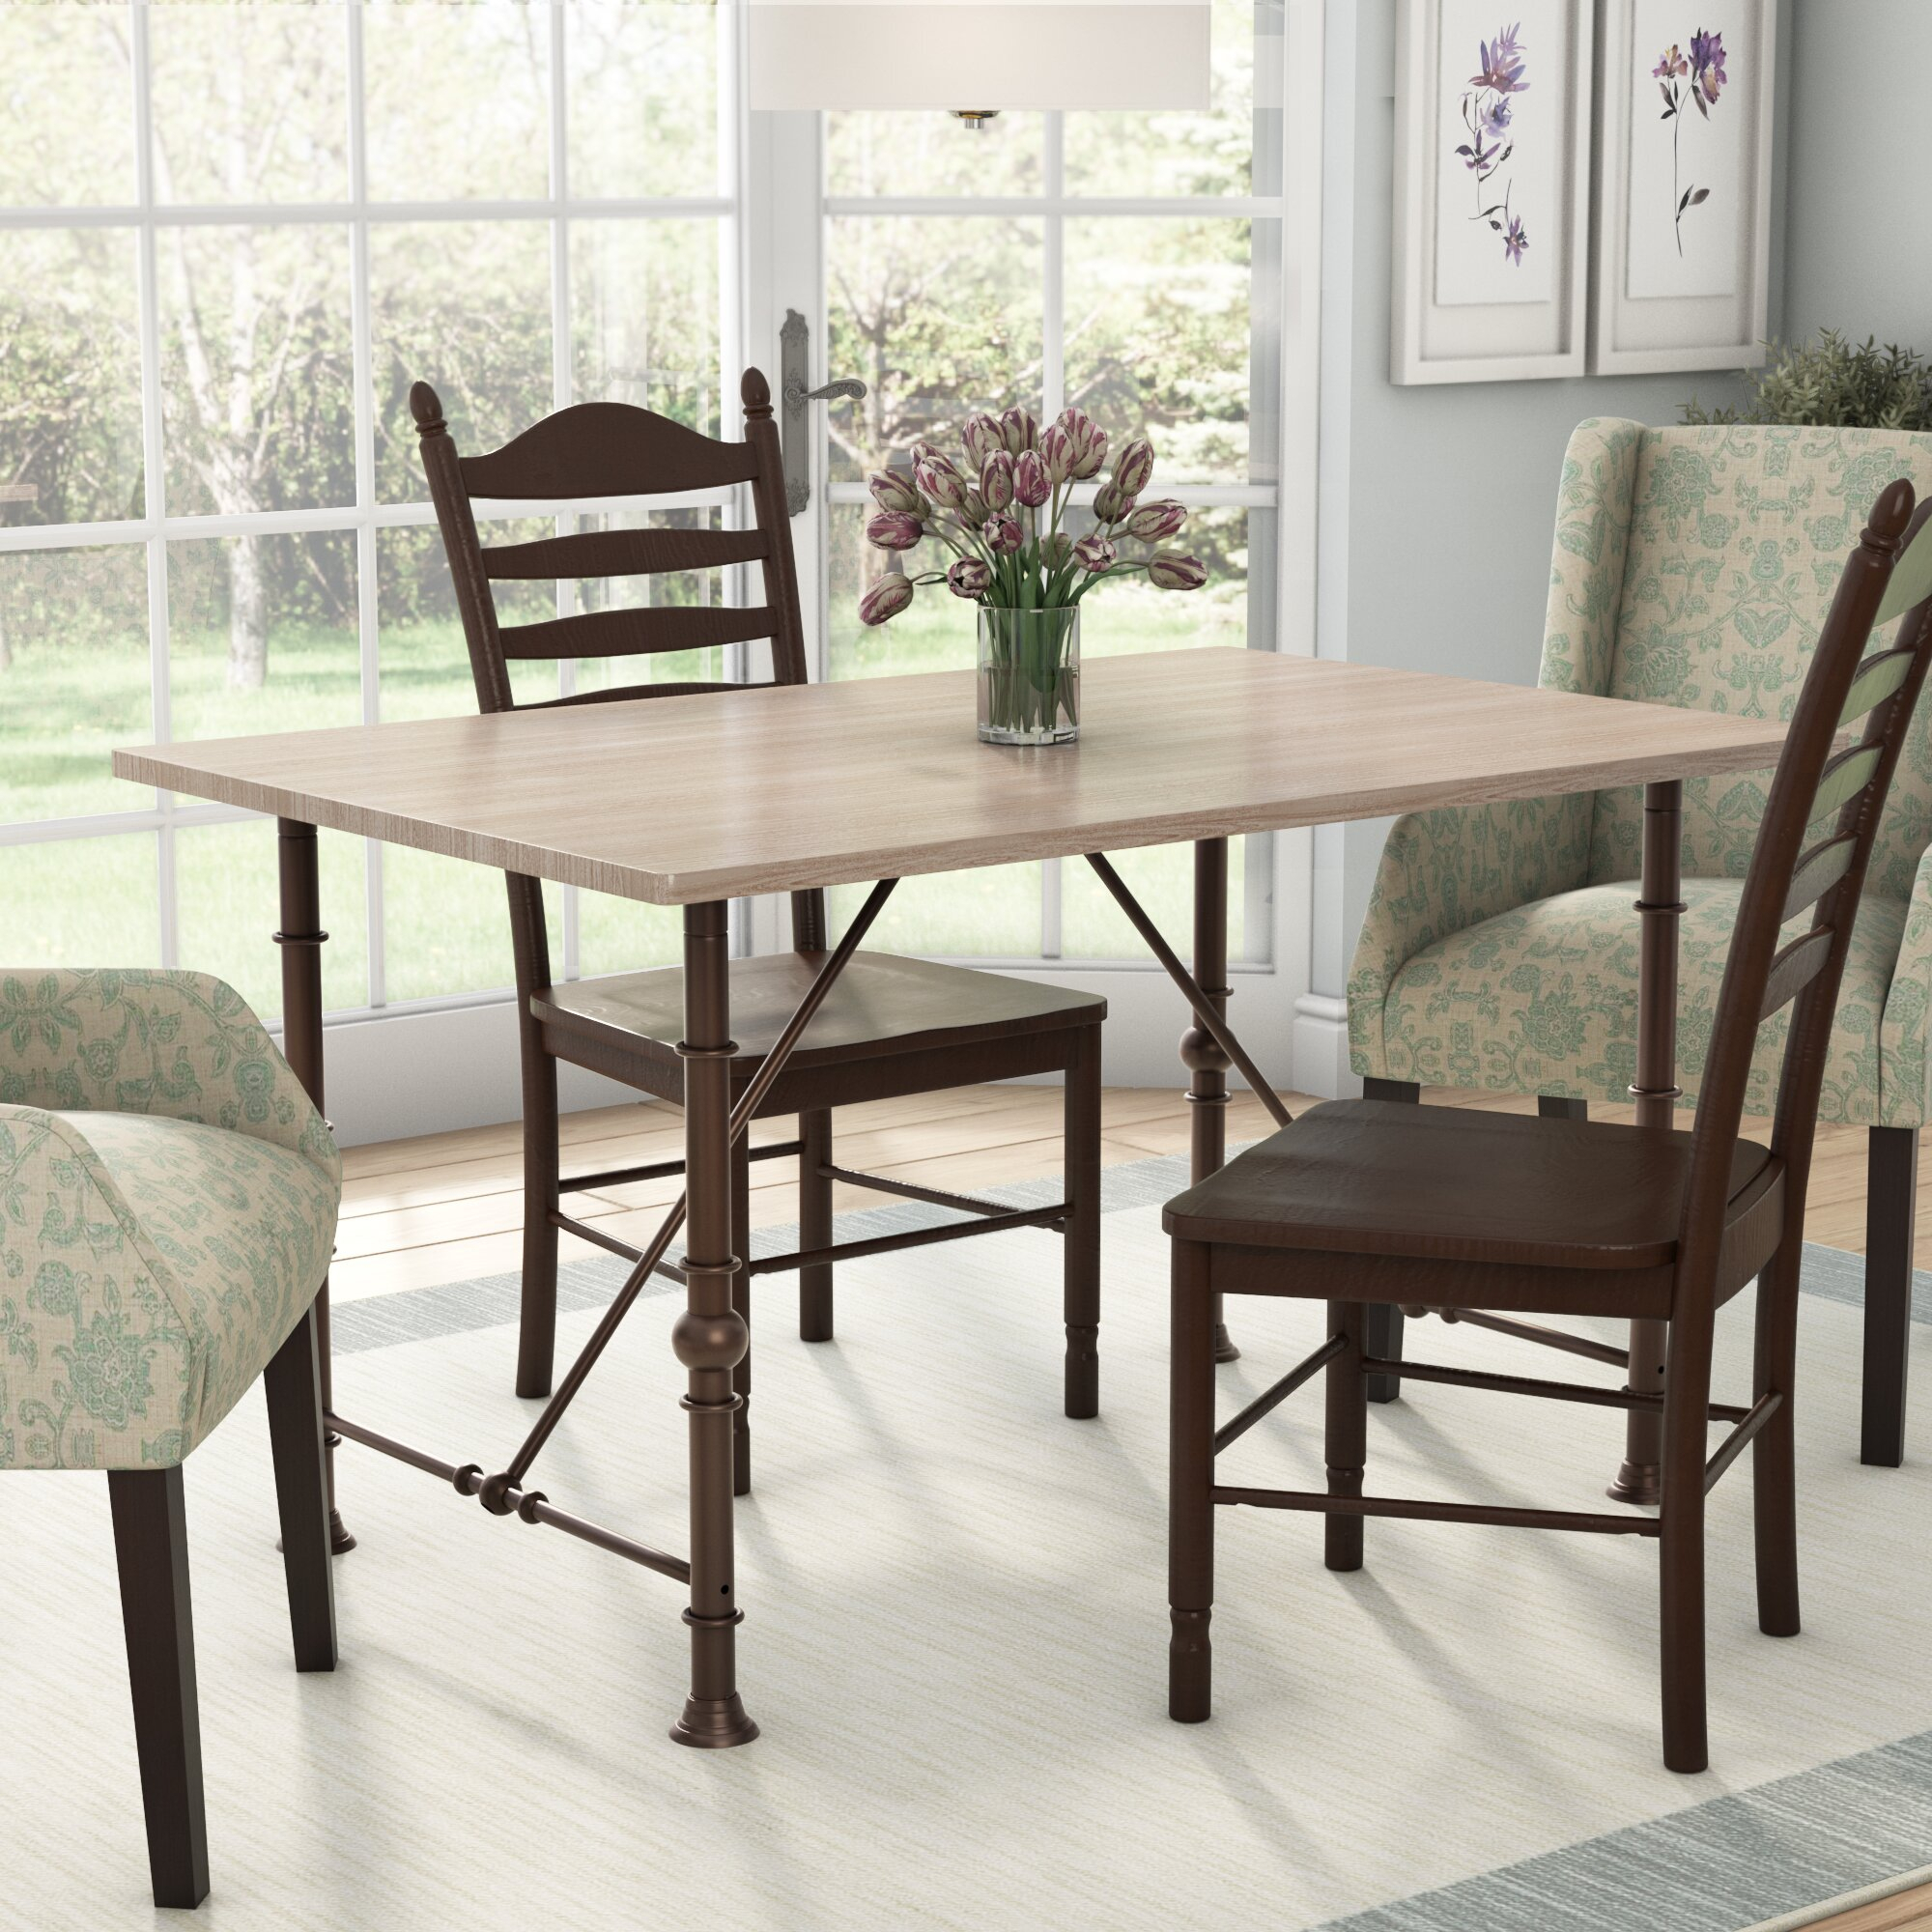 Avery Dining Table With 2018 Avery Rectangular Dining Tables (View 5 of 25)